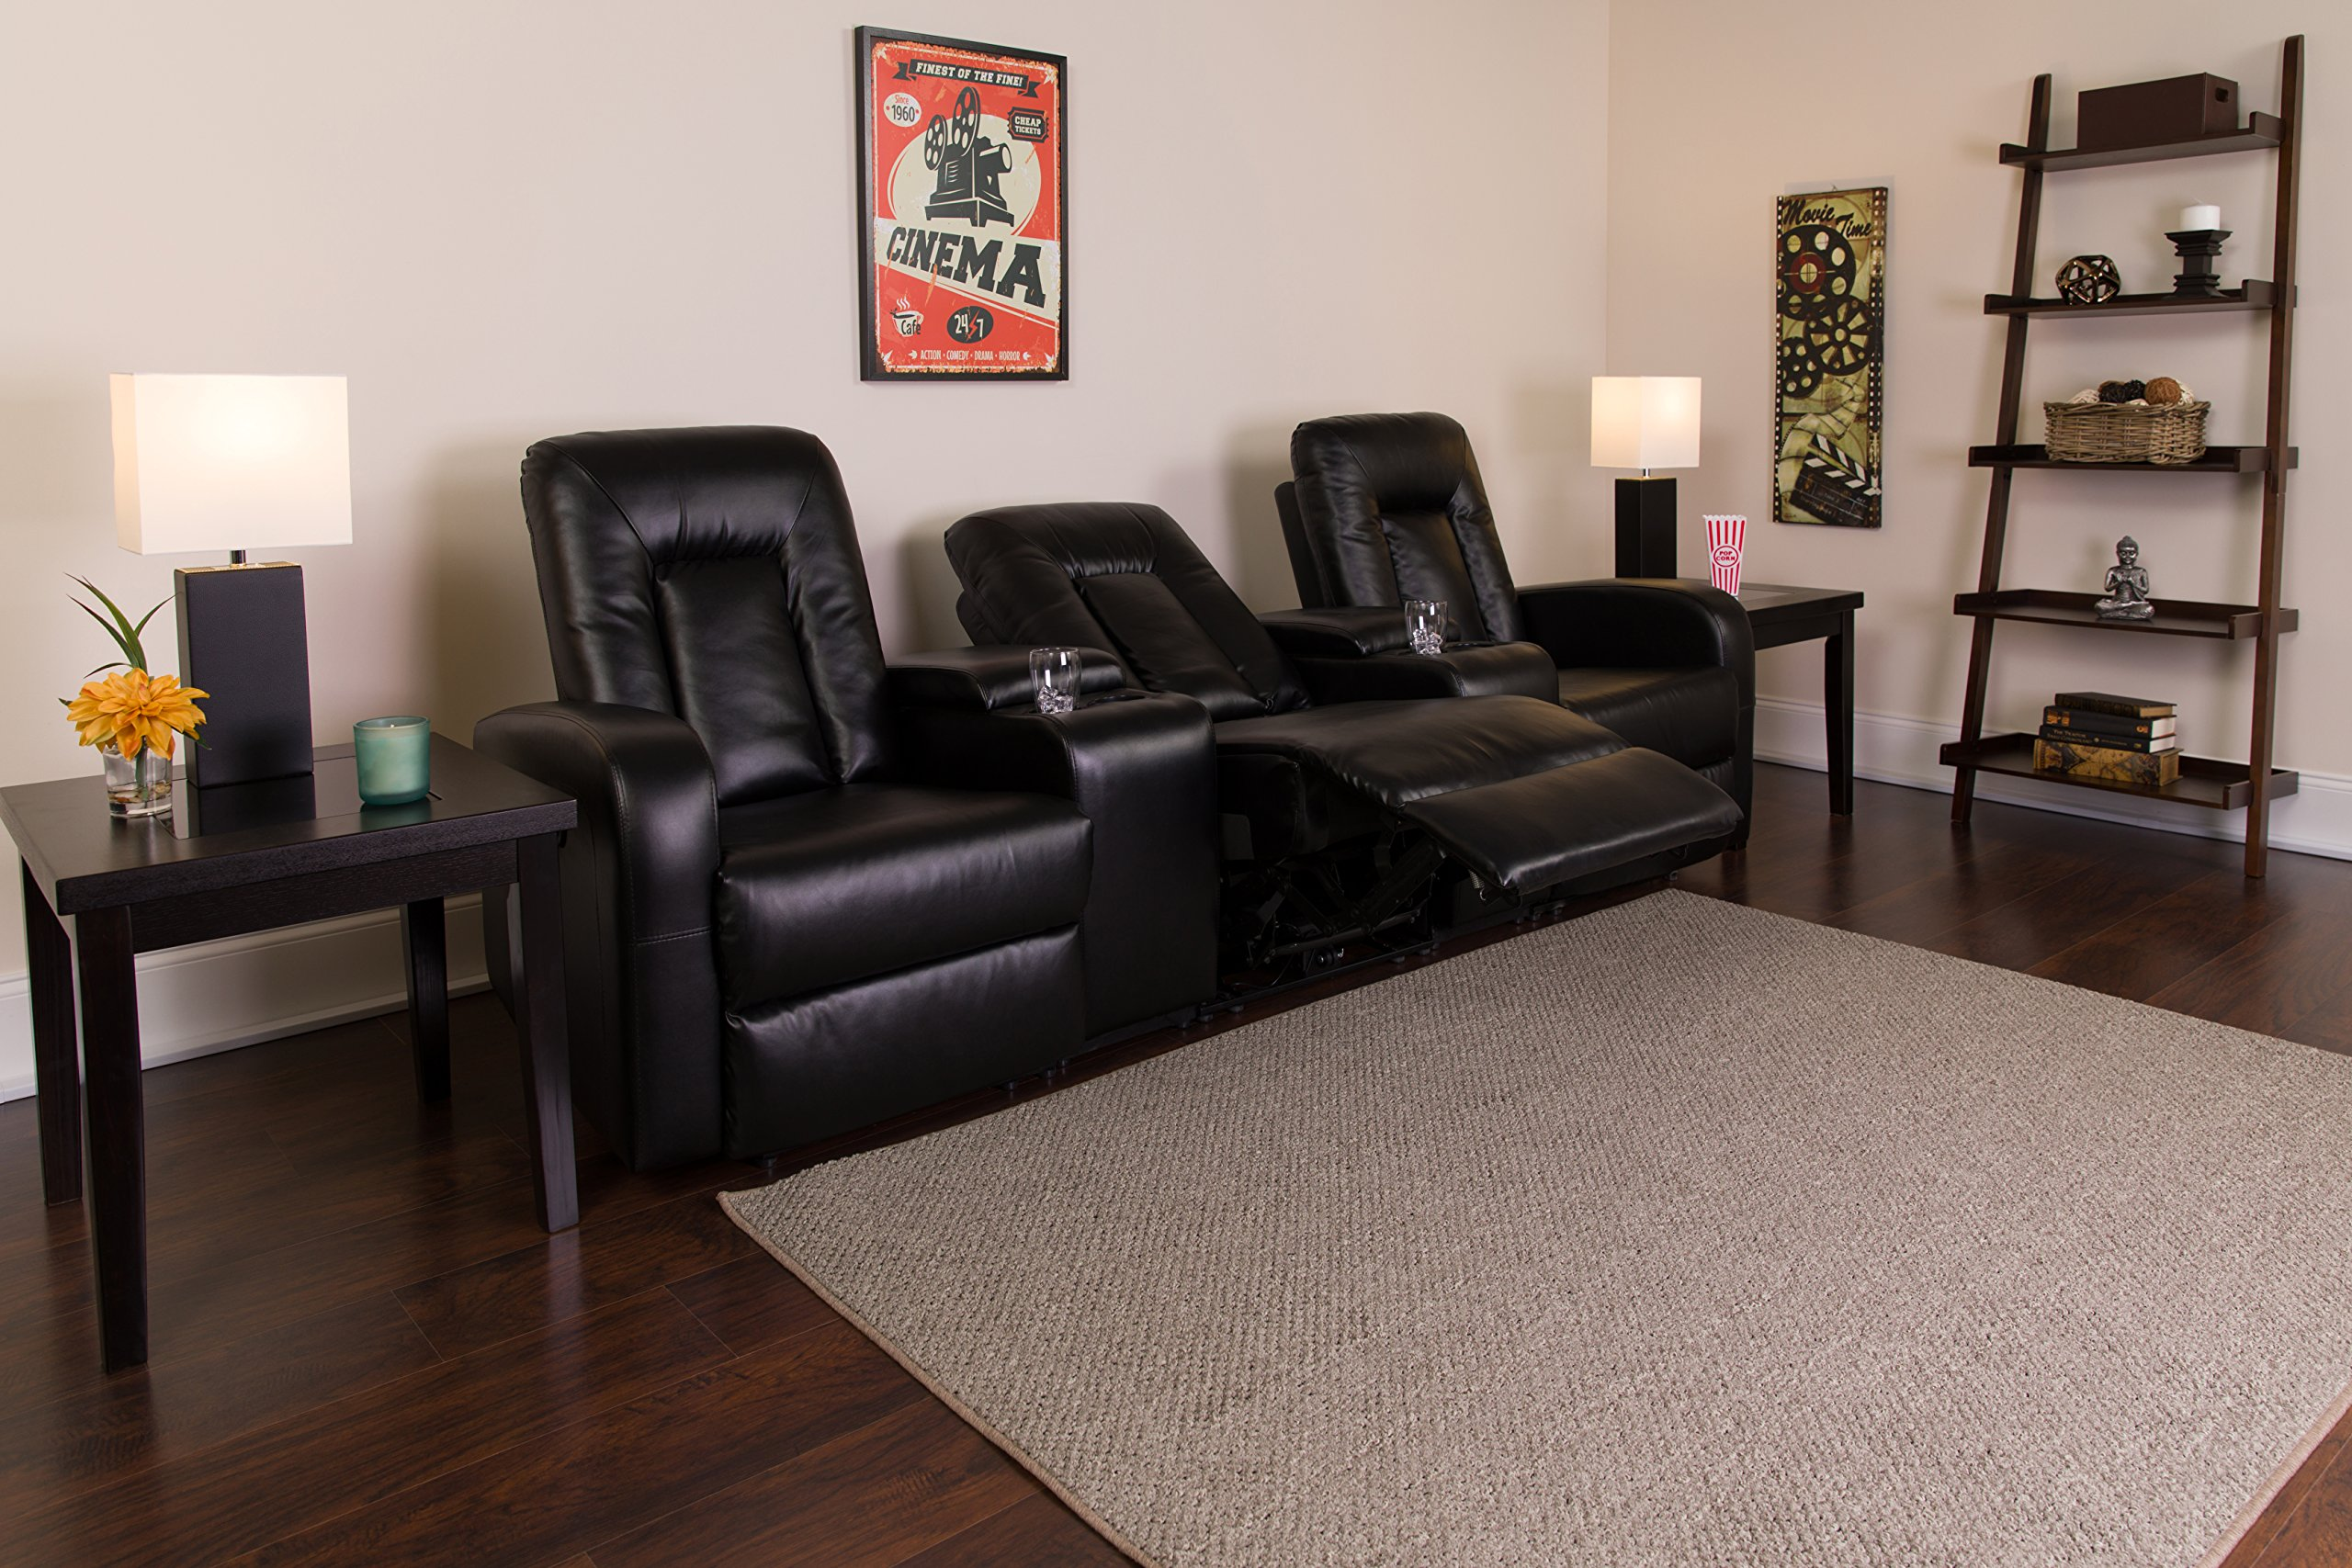 Flash Furniture Eclipse Series 3-Seat Reclining Black Leather Theater Seating Unit with Cup Holders by Flash Furniture